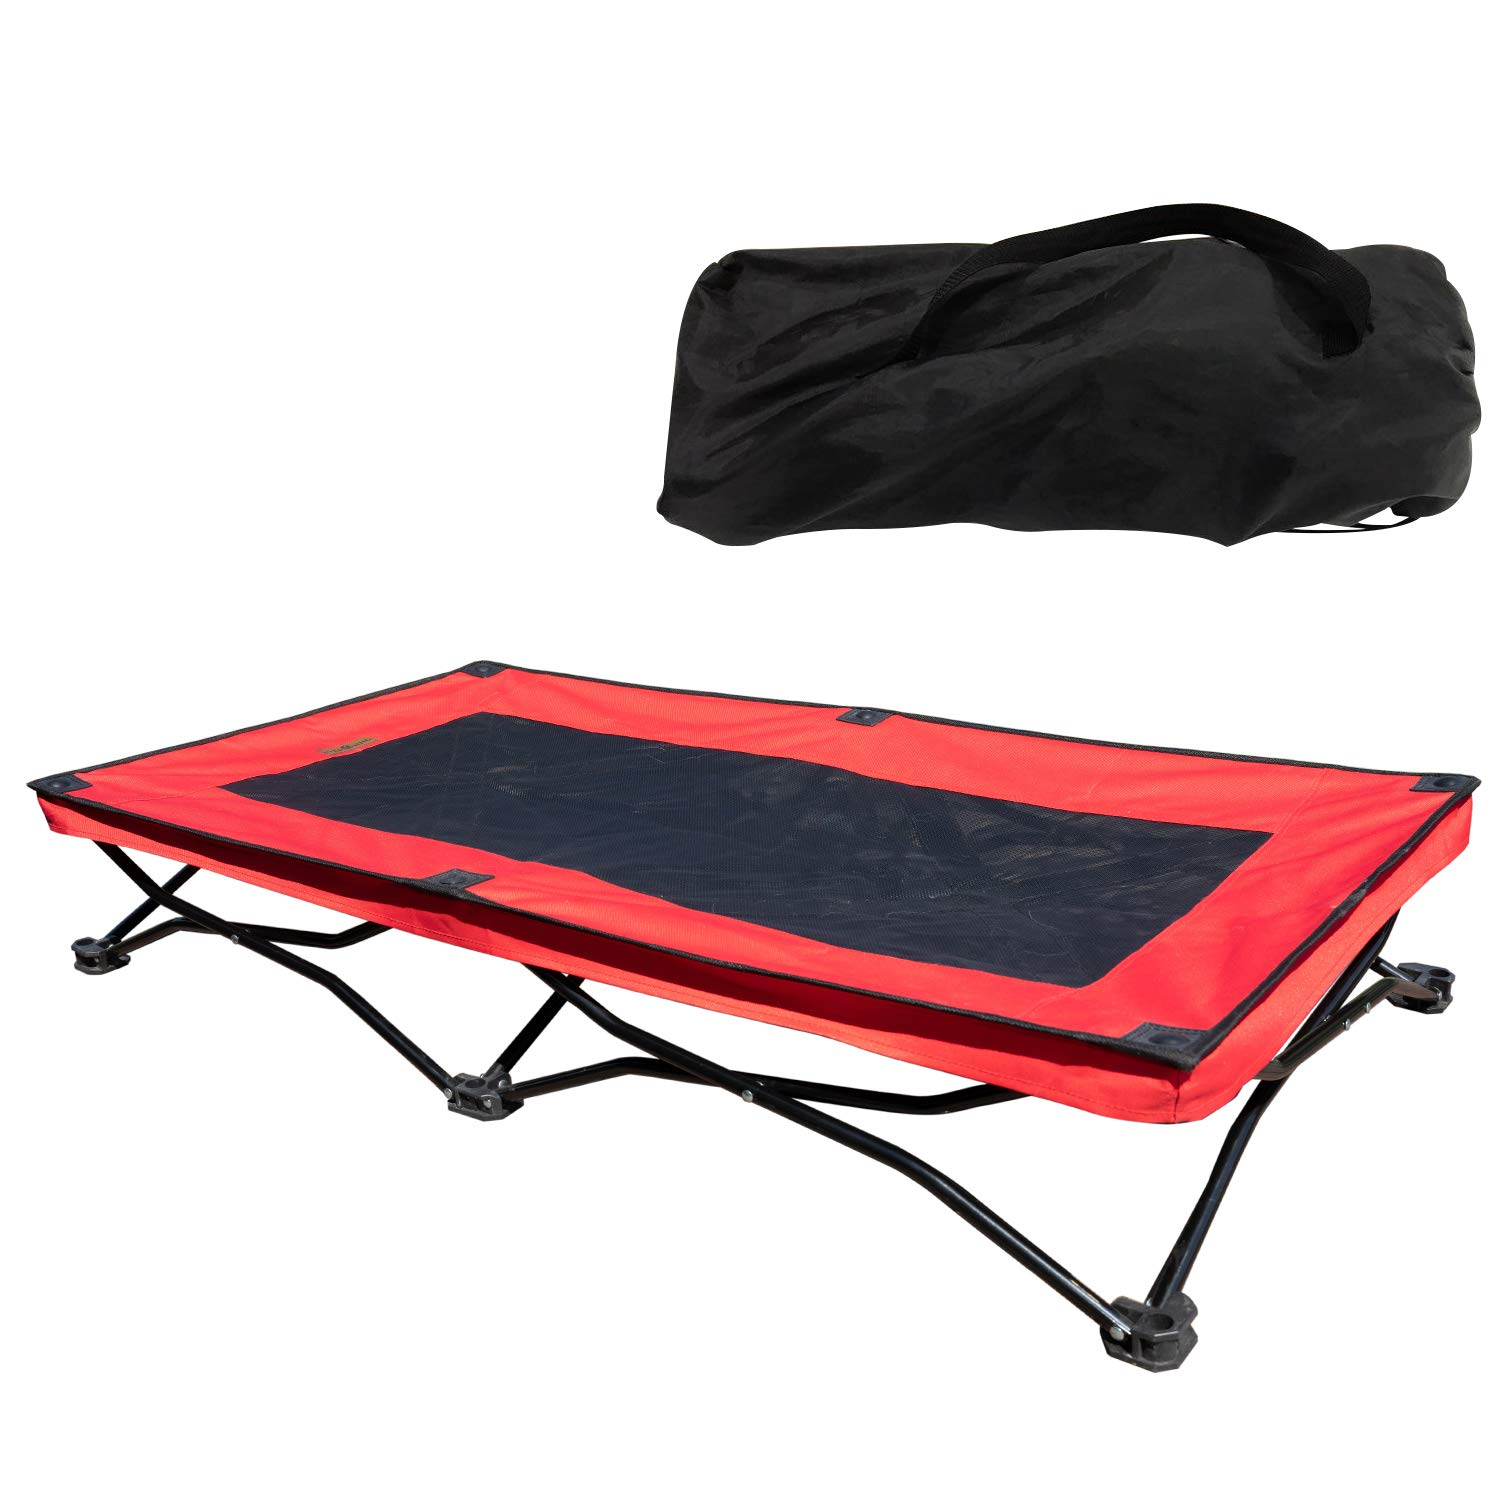 YEPHHO Large Elevated Folding Pet Bed Cot Travel Portable Breathable Cooling Mesh Sleeping Dog Bed 46 Inches Long